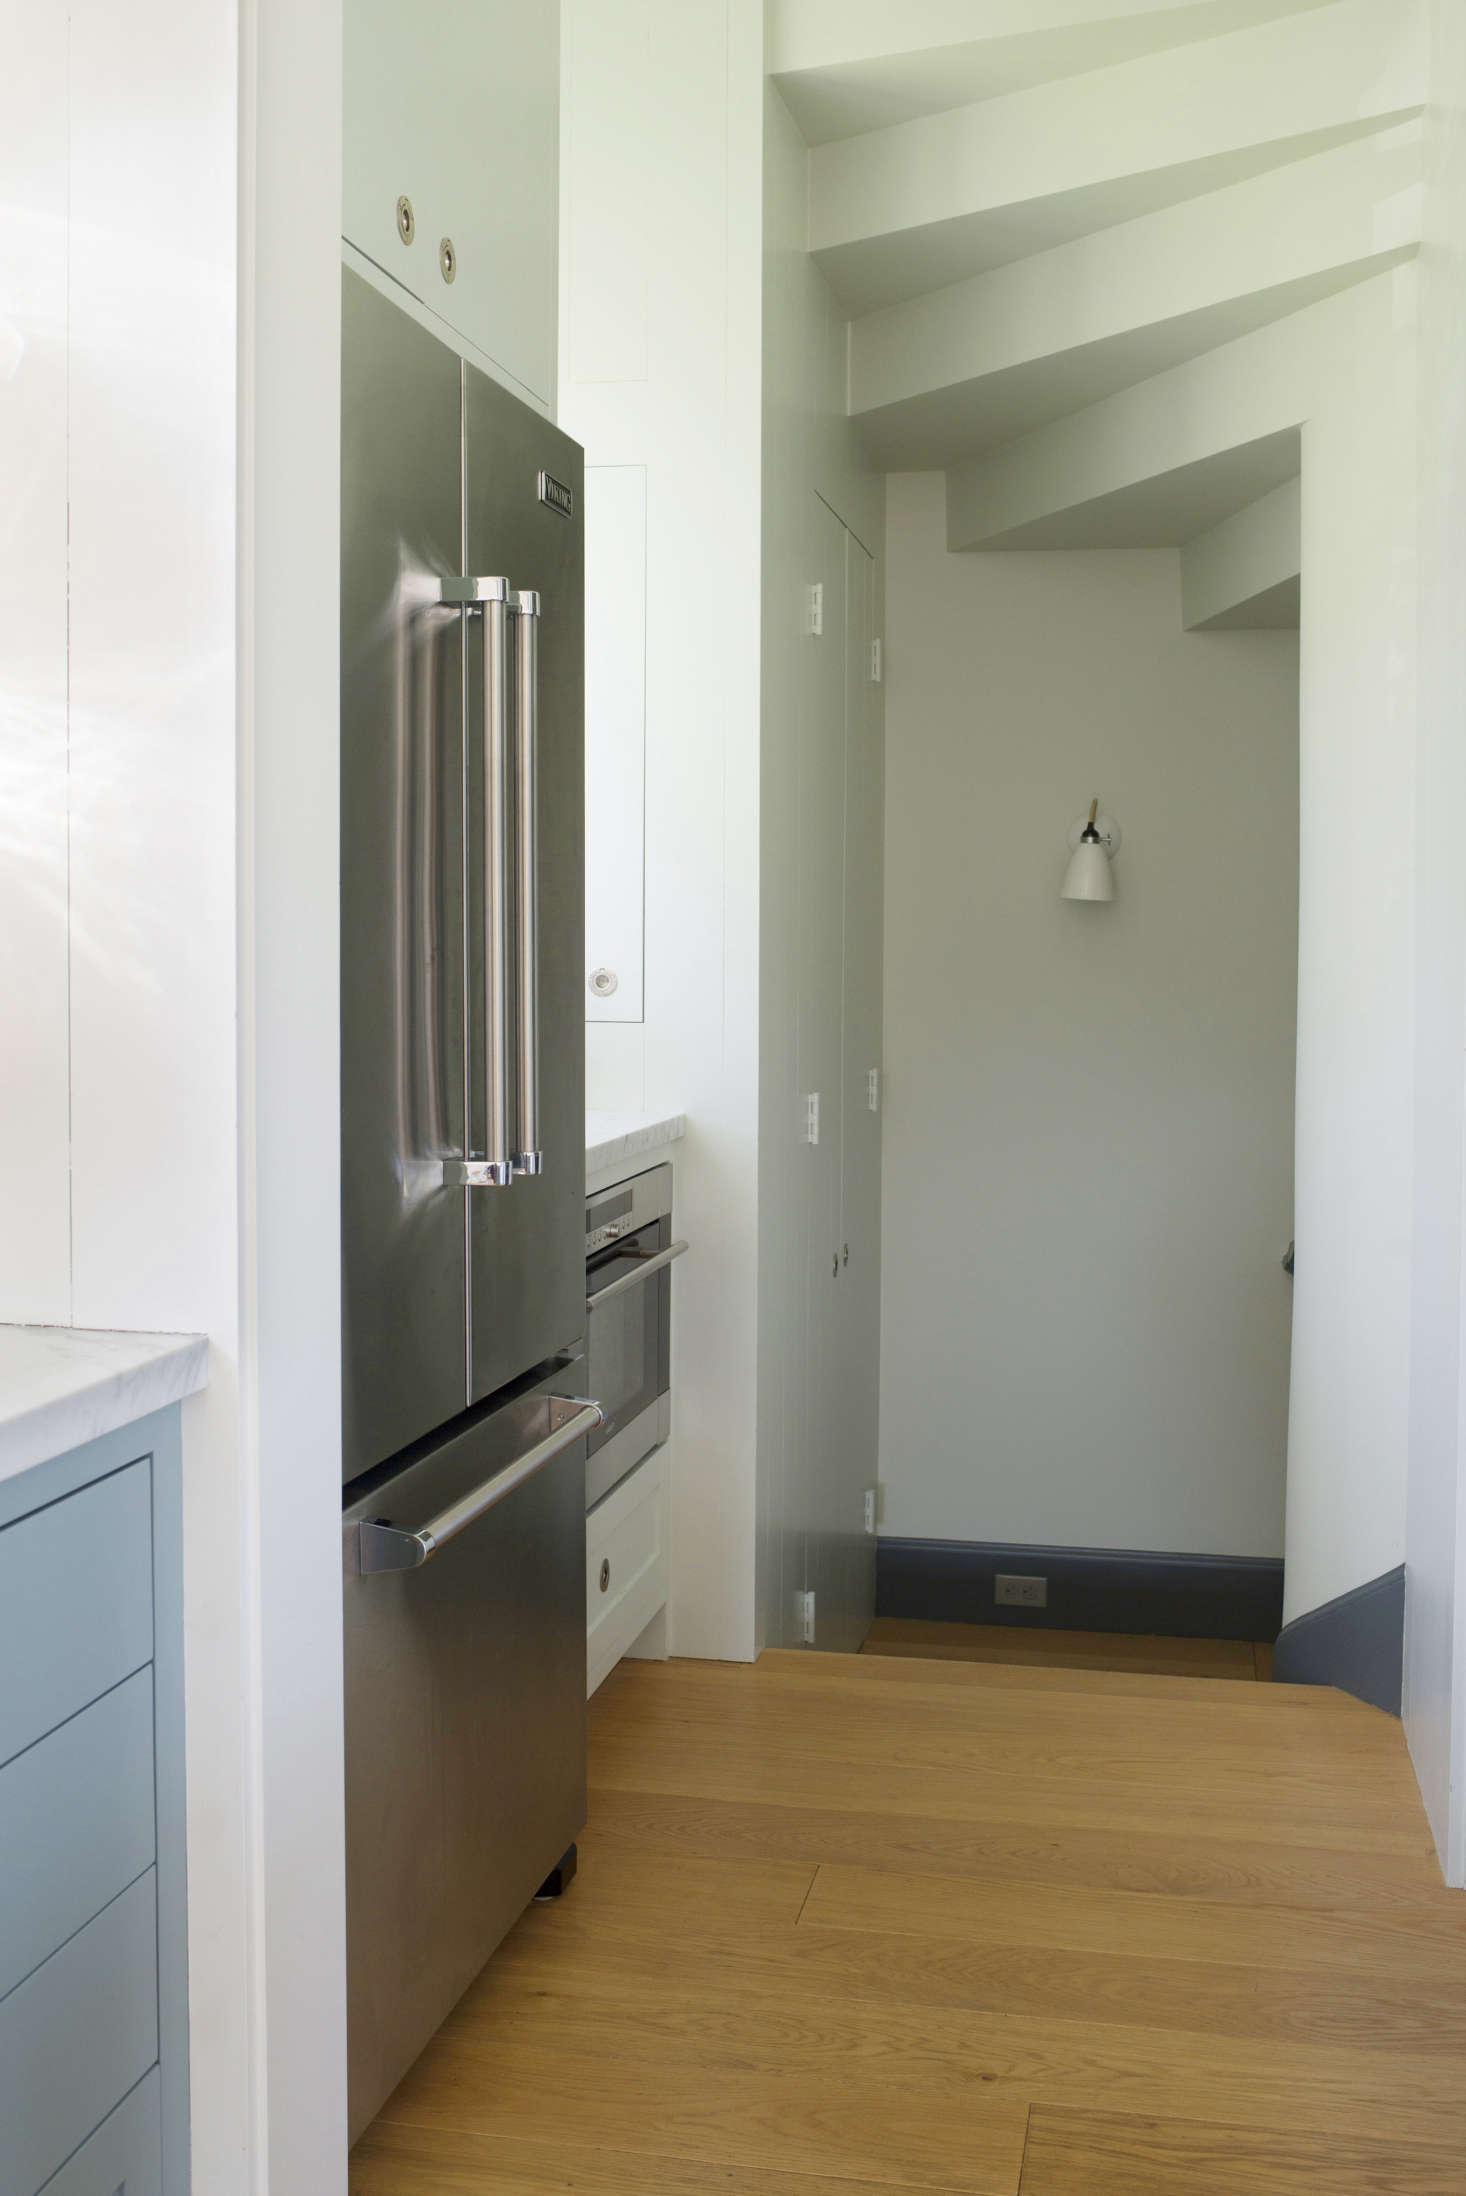 AViking French Door Refrigerator, with plenty of space for swinging doors: See Kitchen of the Week: A New-Build Kitchen in Mill Valley, CA, the Six-Month Check-Up. Photograph by Andres Gonzalez.